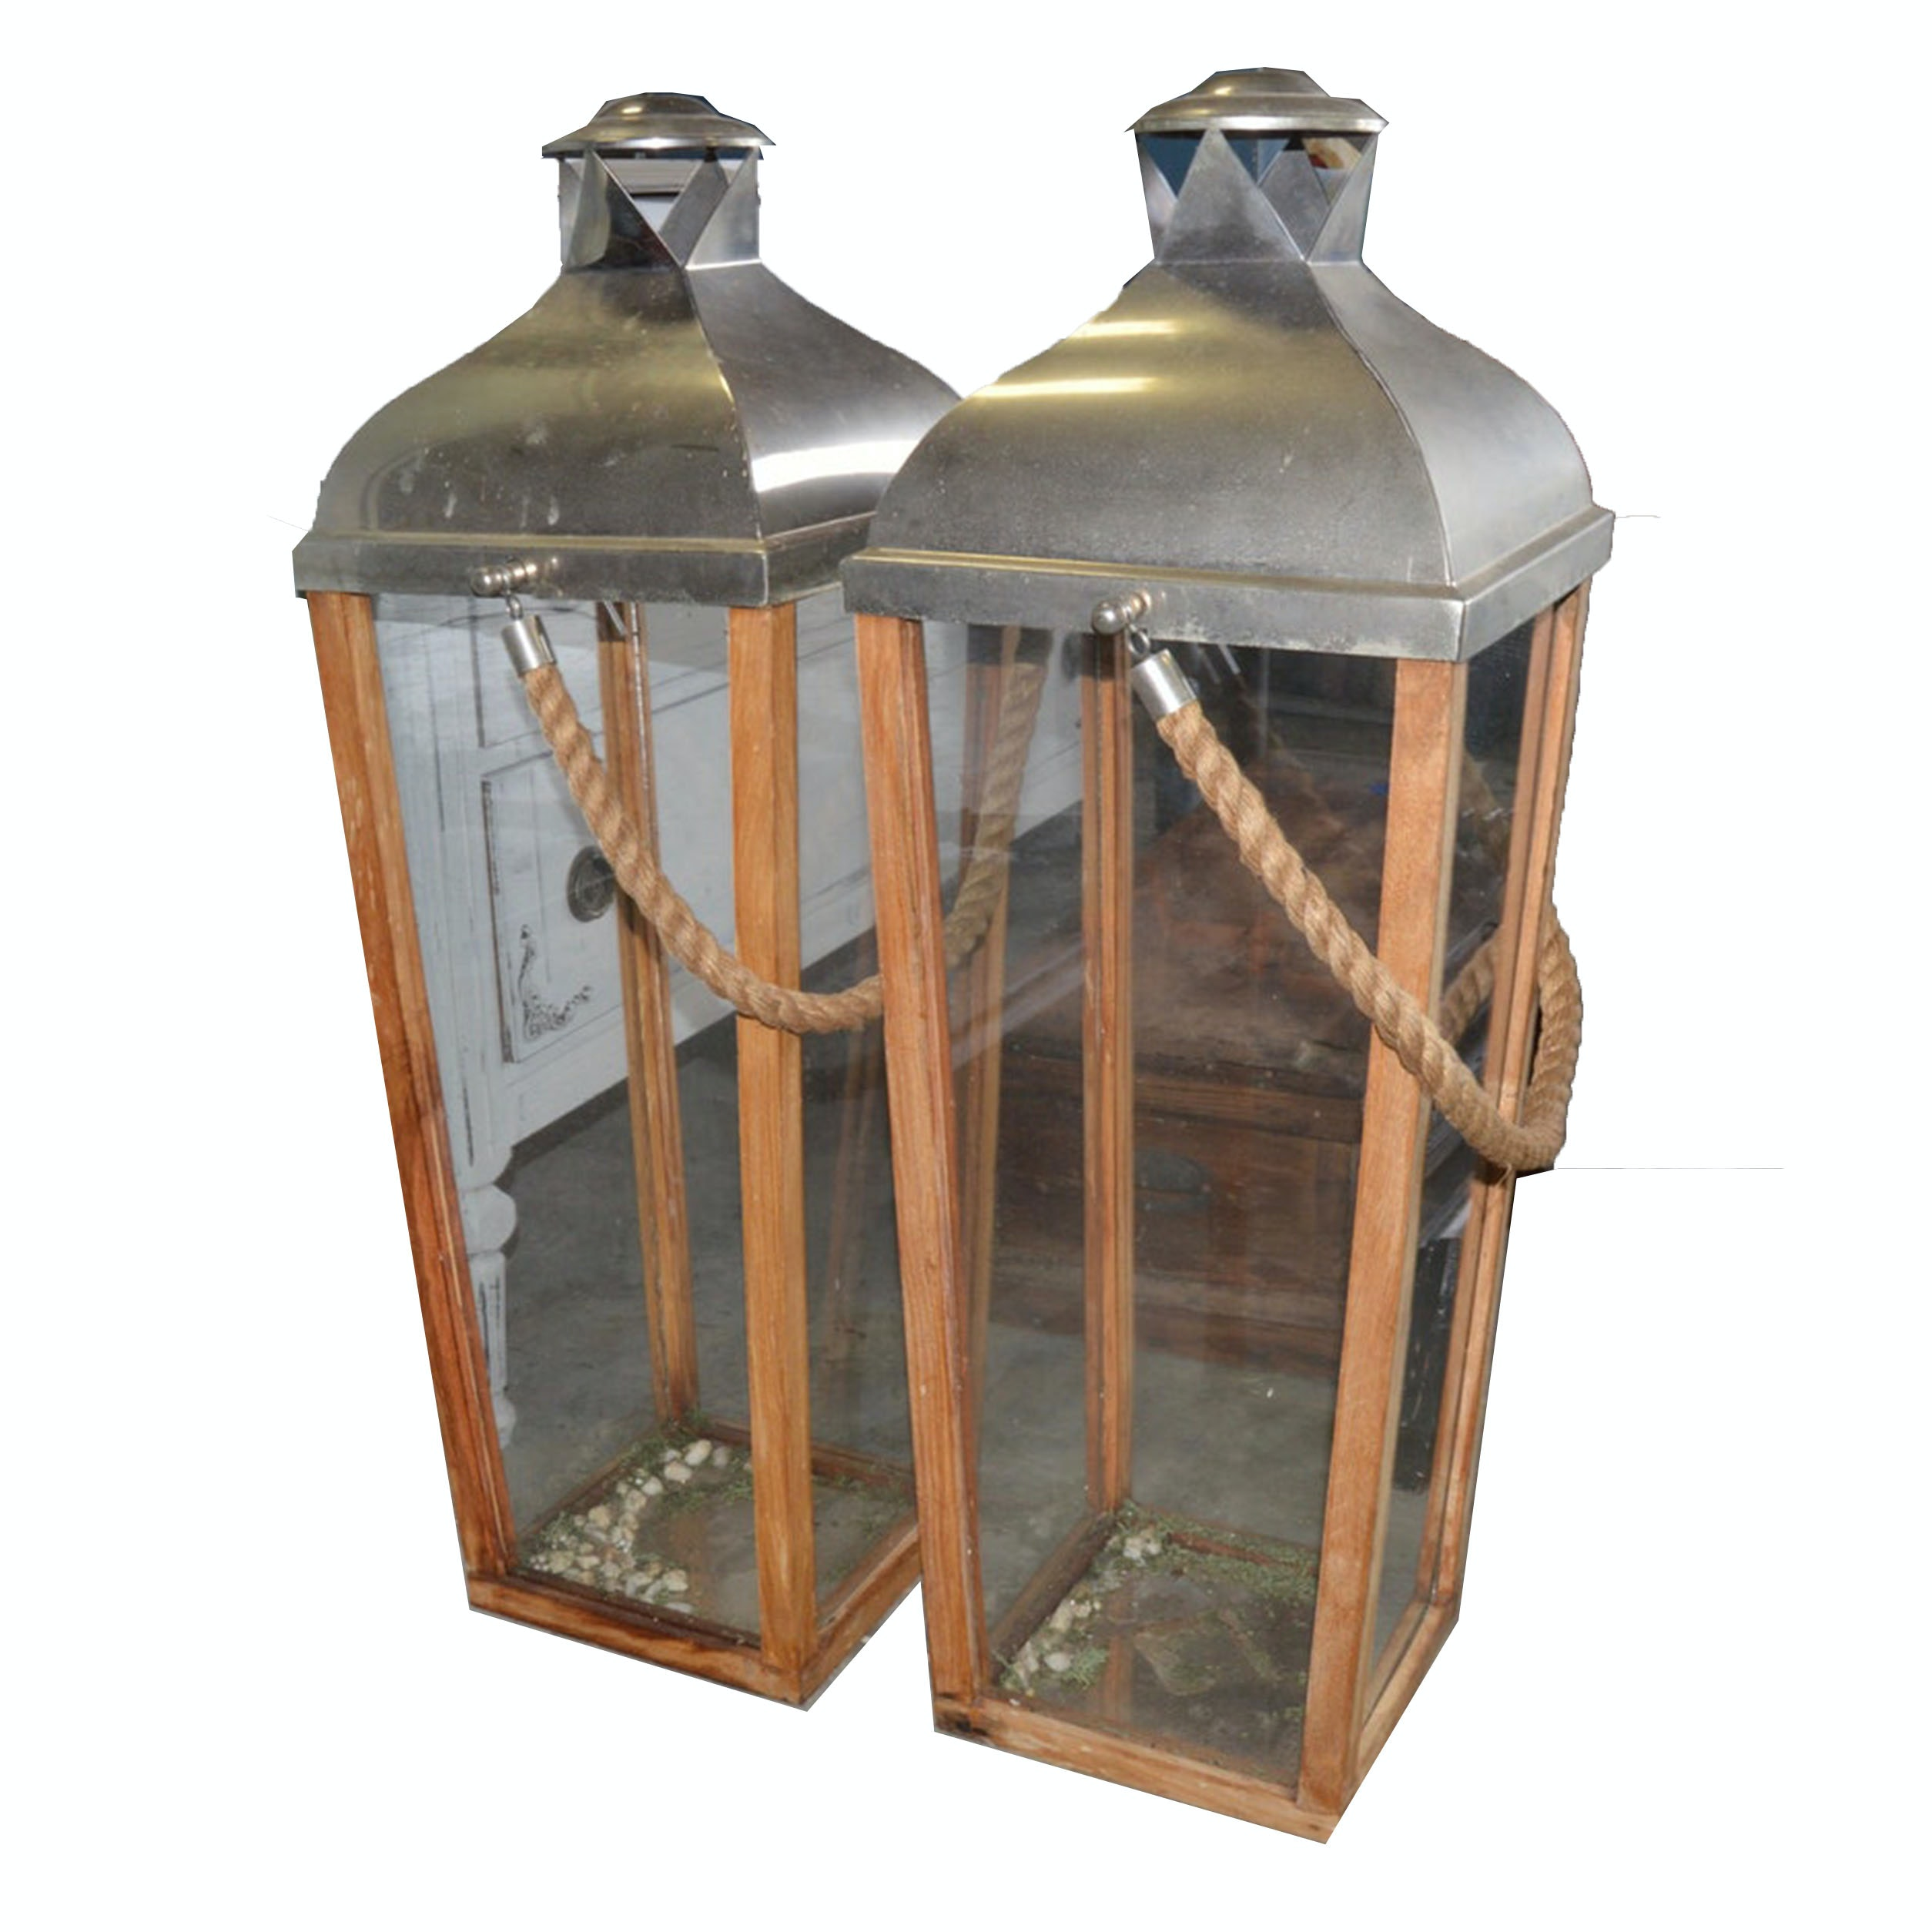 Tall Outdoor Hurricane Lanterns